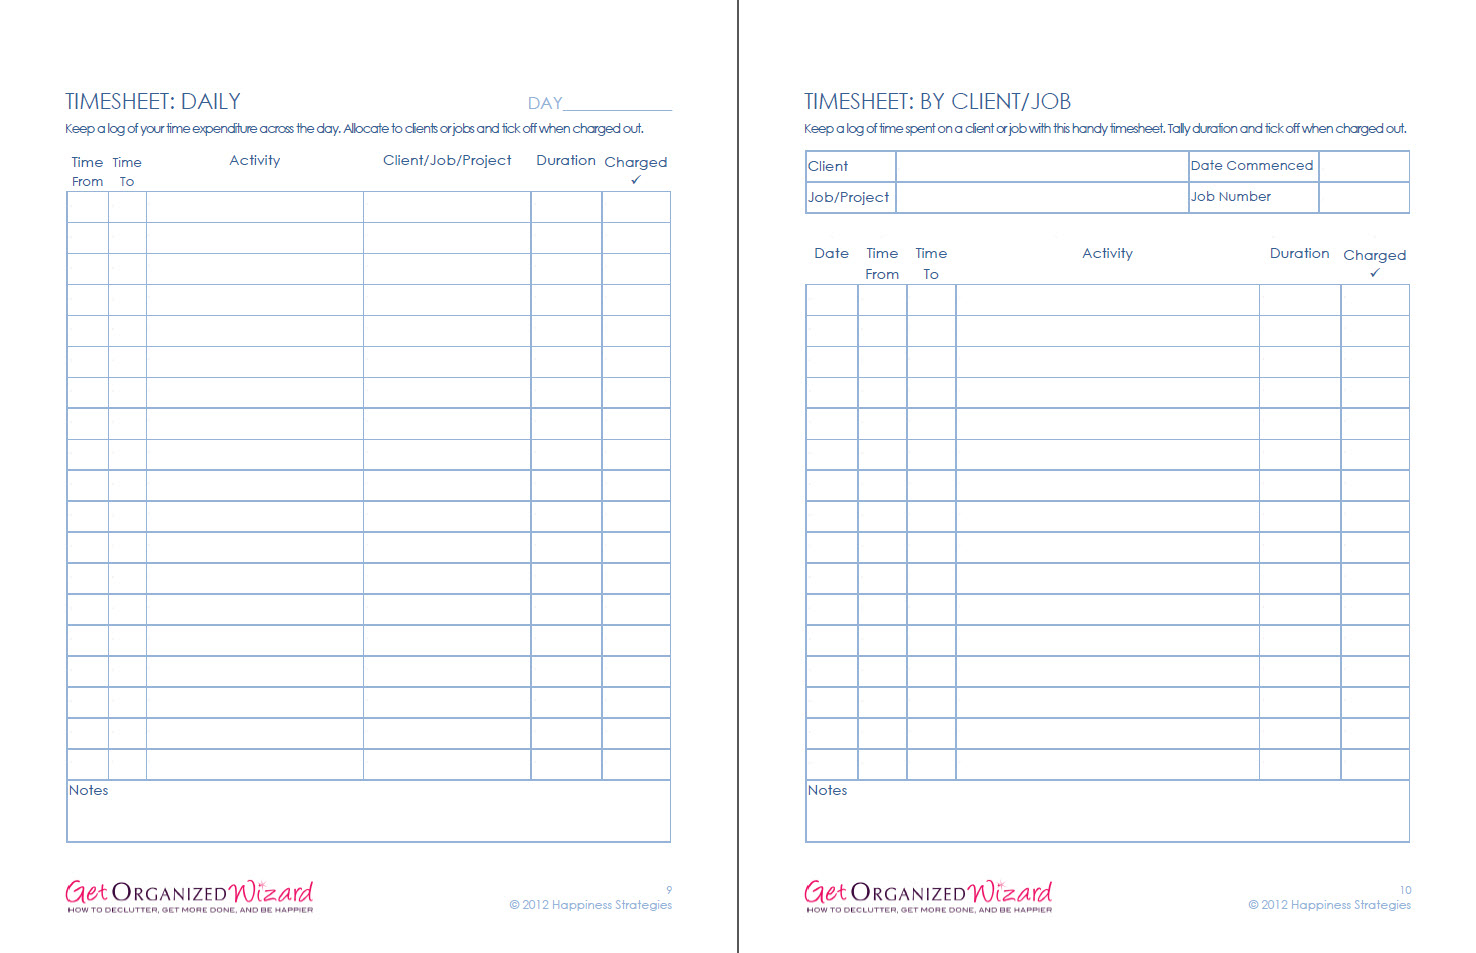 Business & Marketing Worksheets - Get Organized Wizard | Business Worksheets Printables